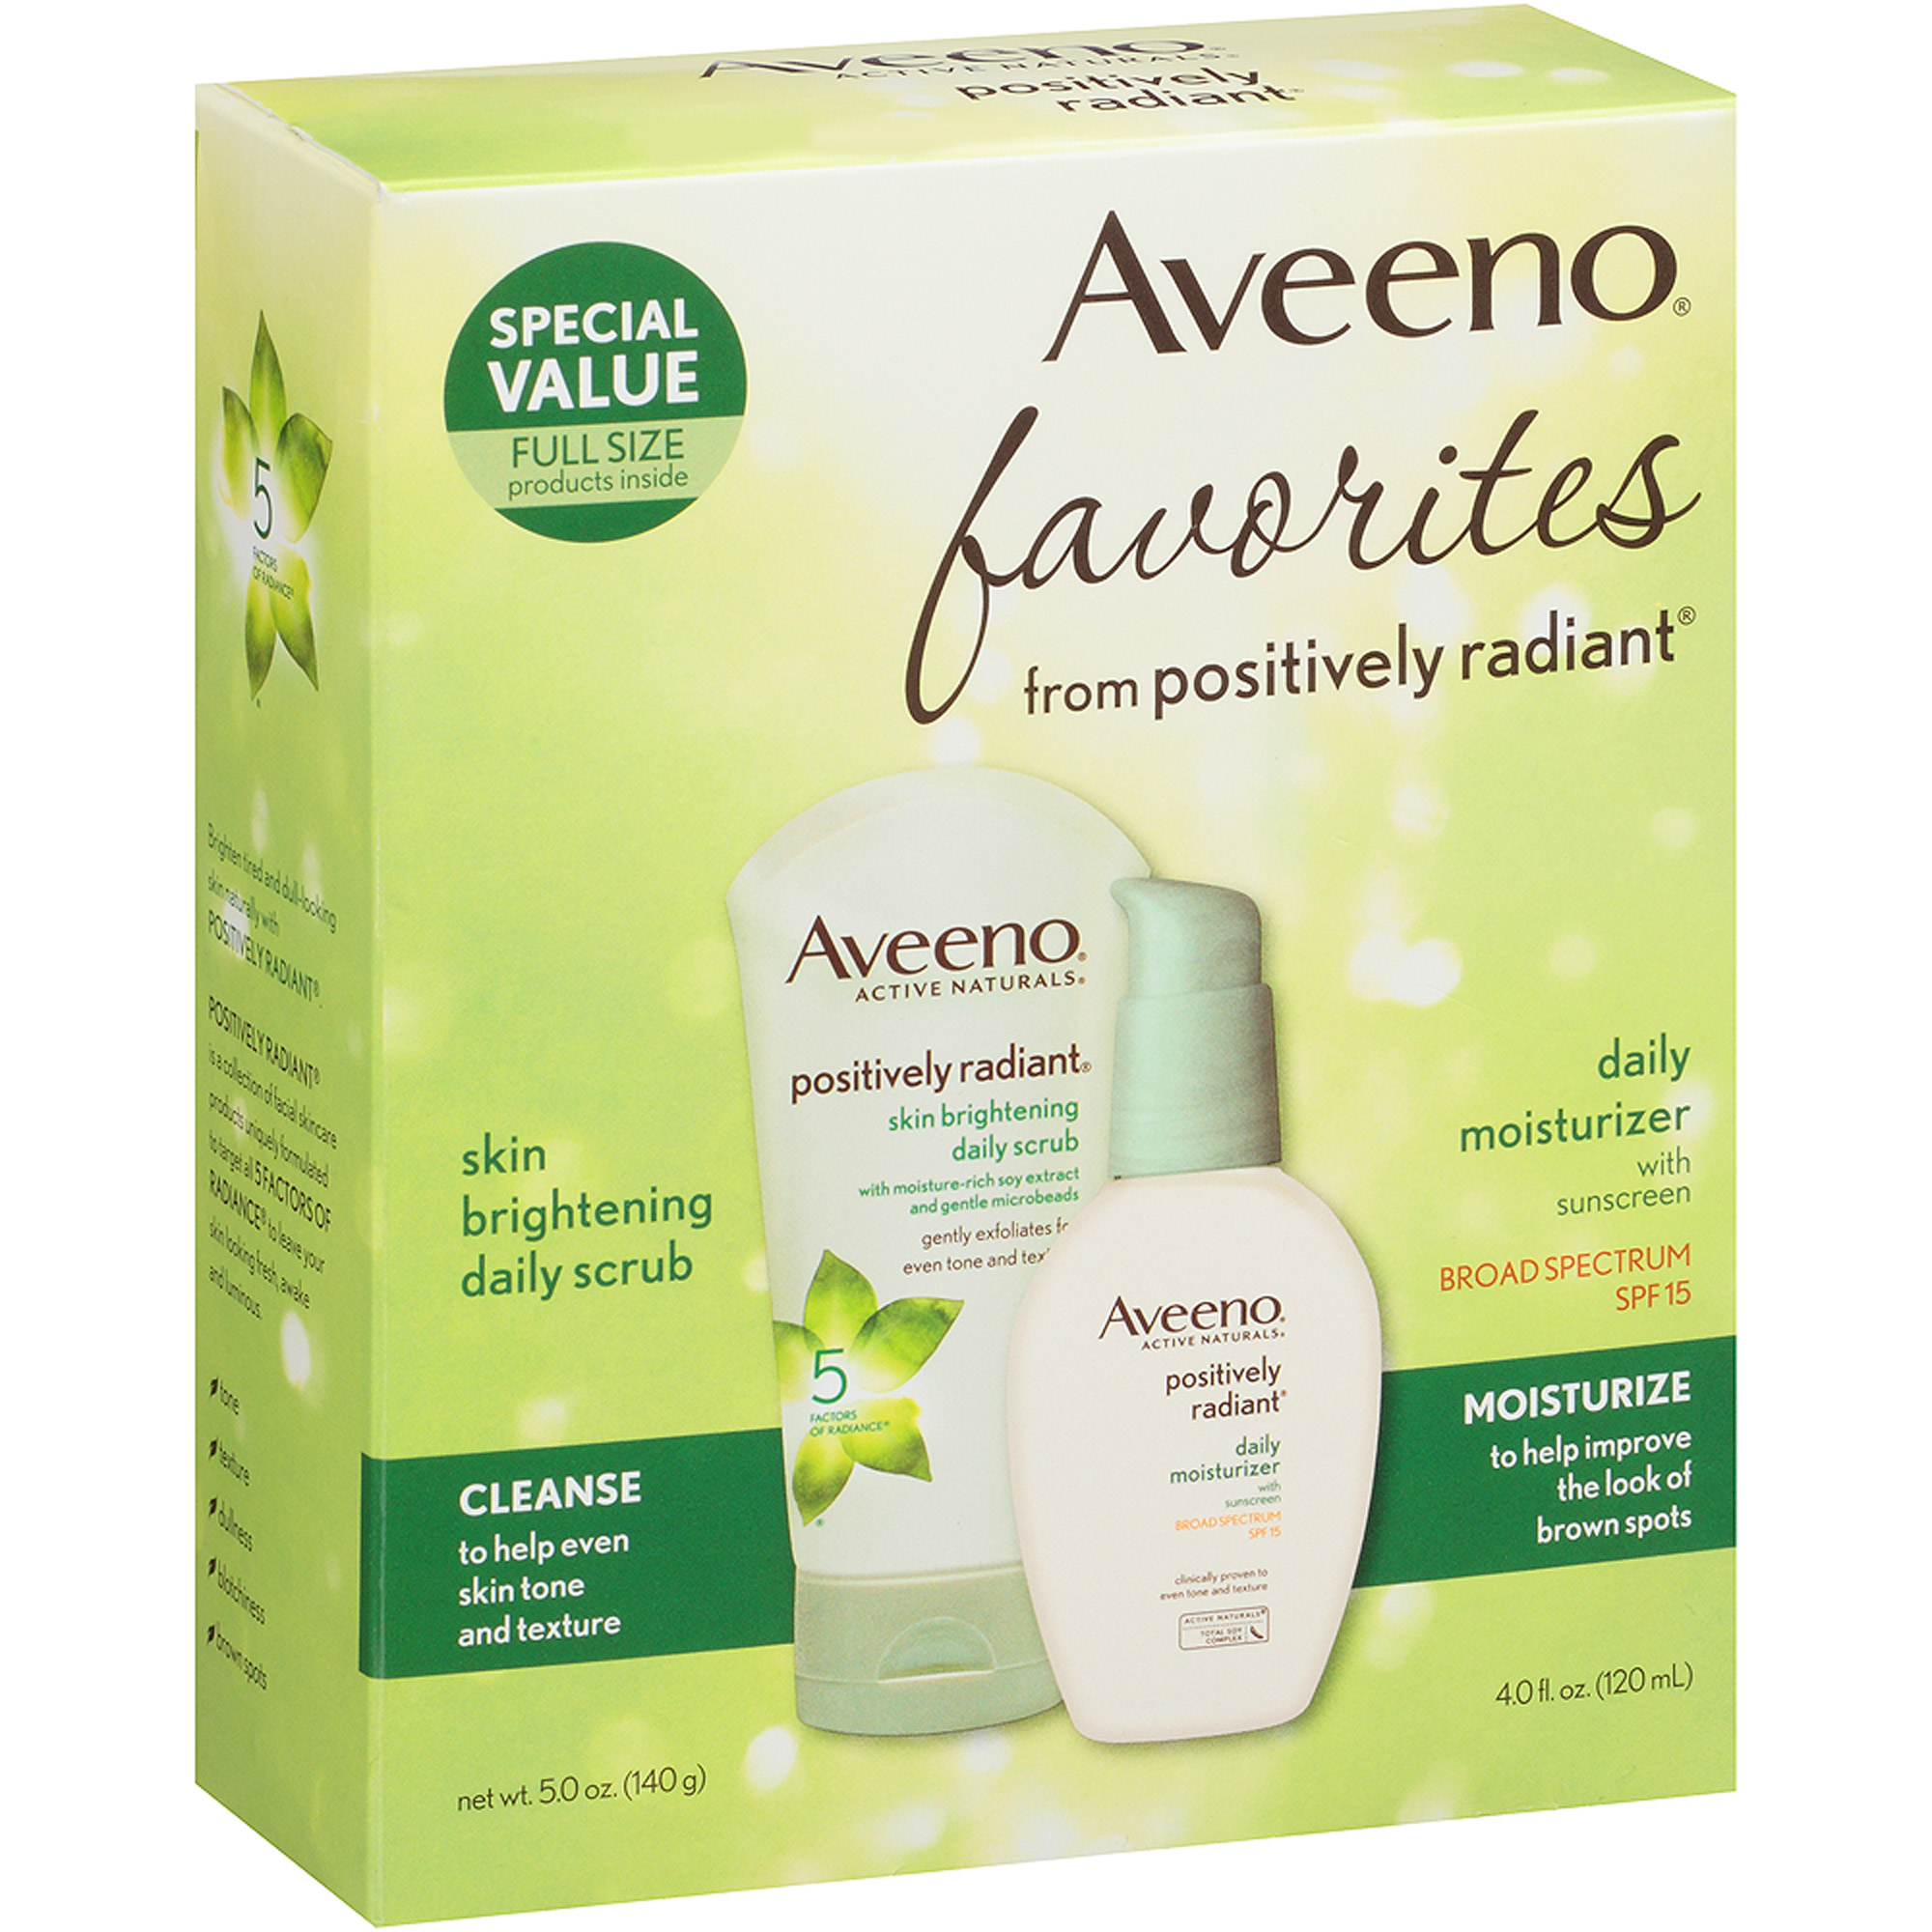 Aveeno Favorites from Positively Radiant Daily Scrub & Moisturizer Set, 2 pc